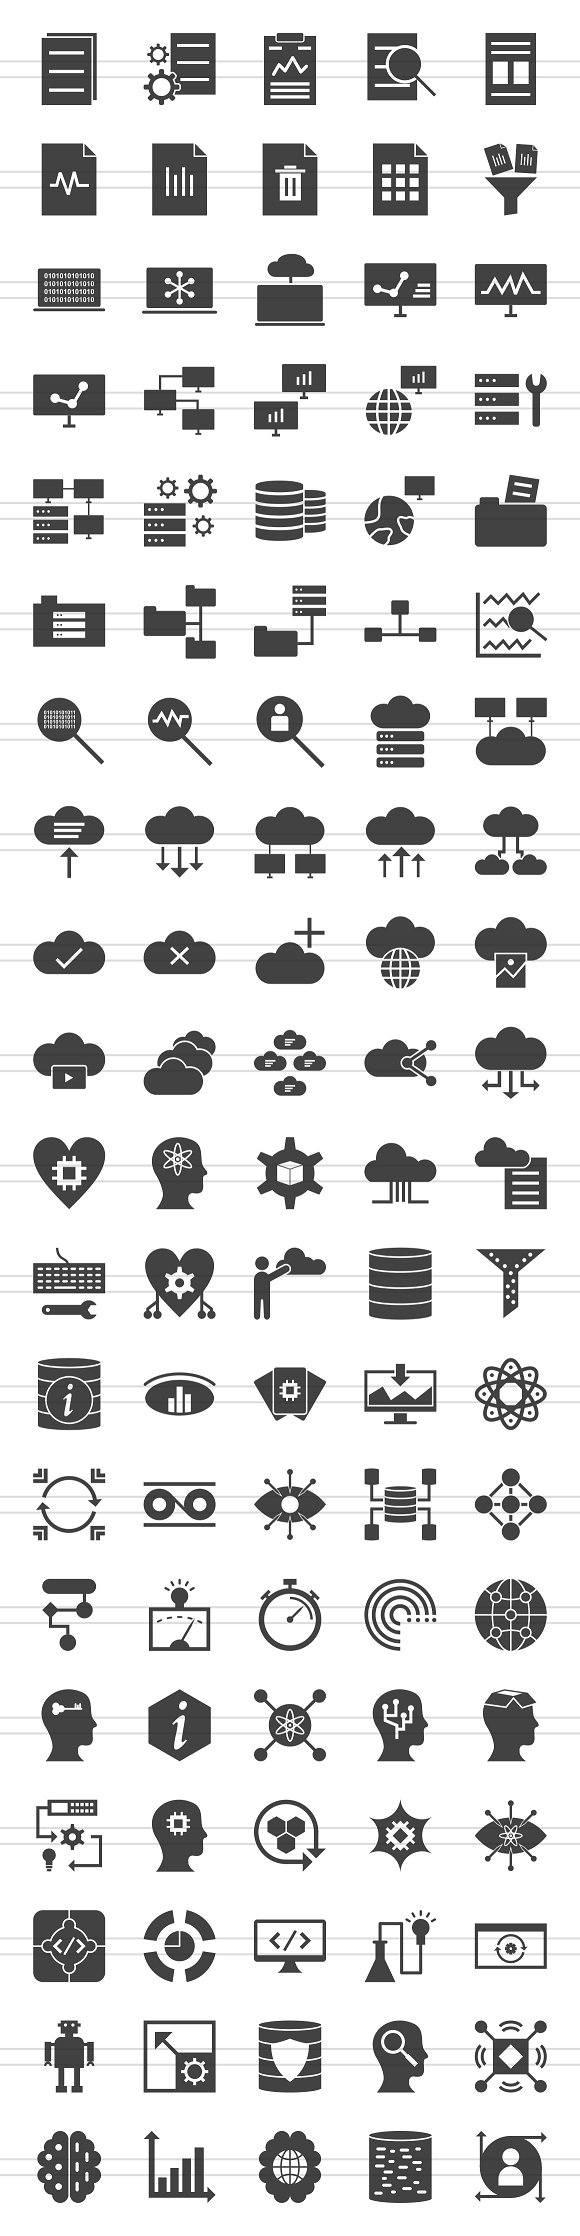 100 Data Glyph Icons in Icons - product preview 1